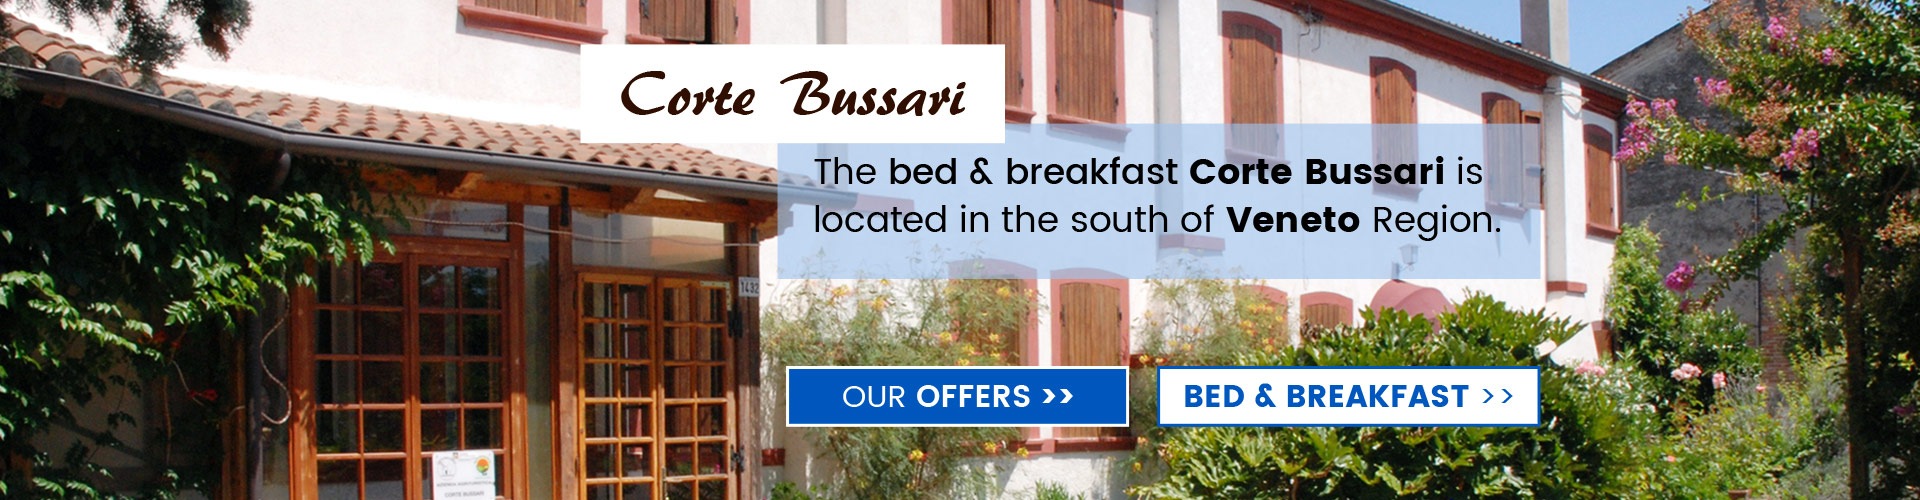 Bed & breakfast Corte Bussari is located in the south of Veneto Region